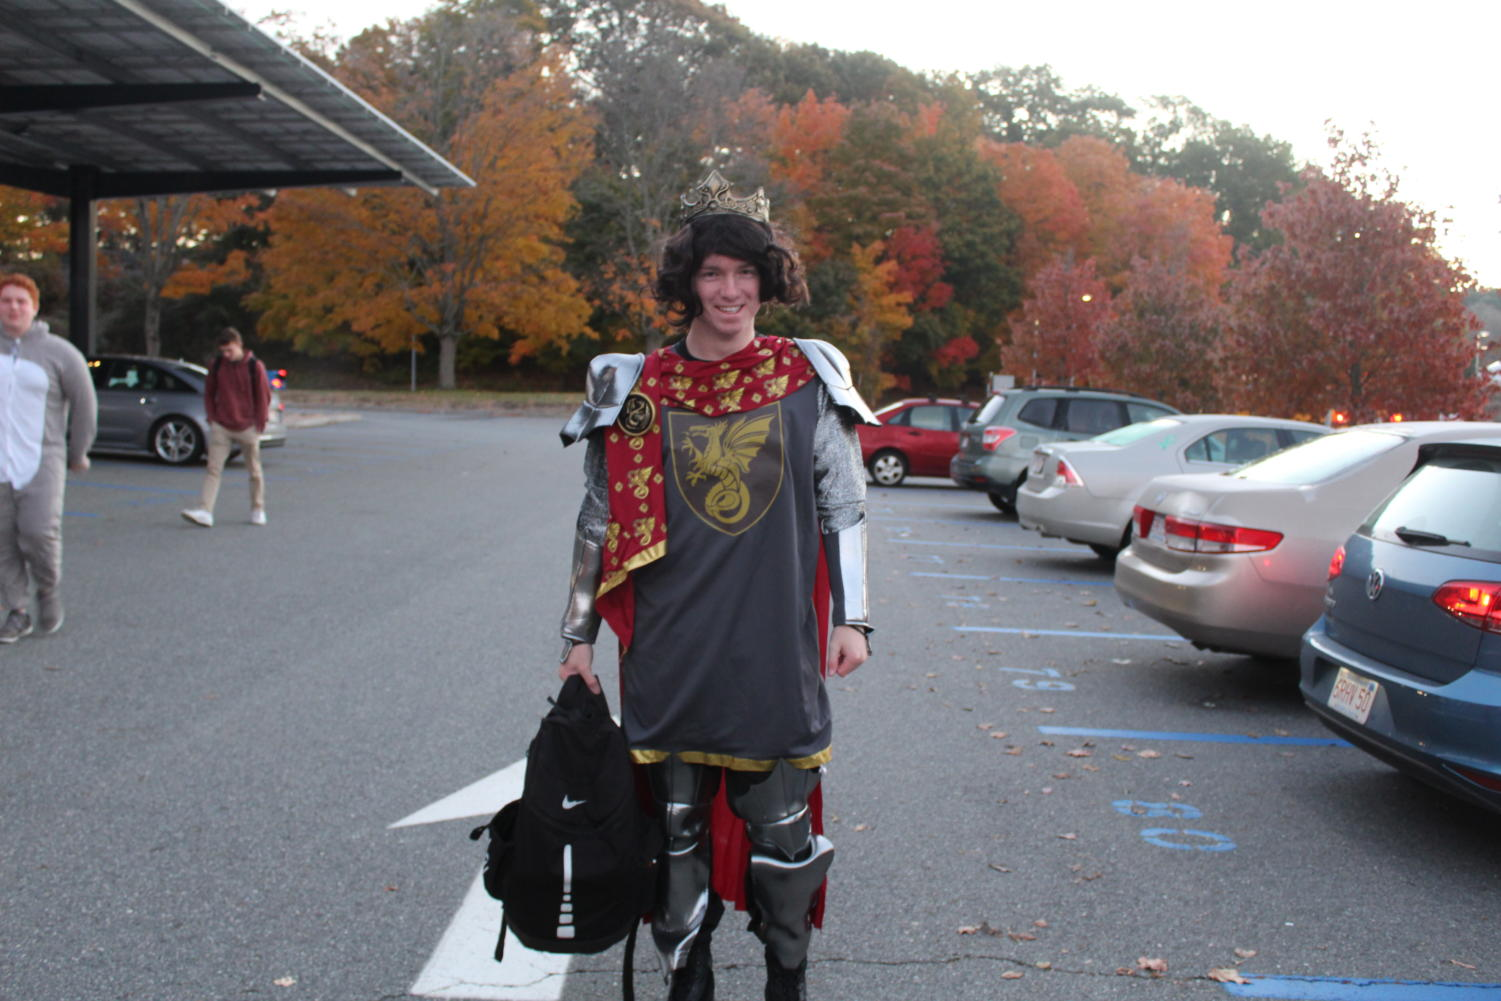 Henry+Stafford+sports+a+crown+as+a+knight+in+shining+armor.